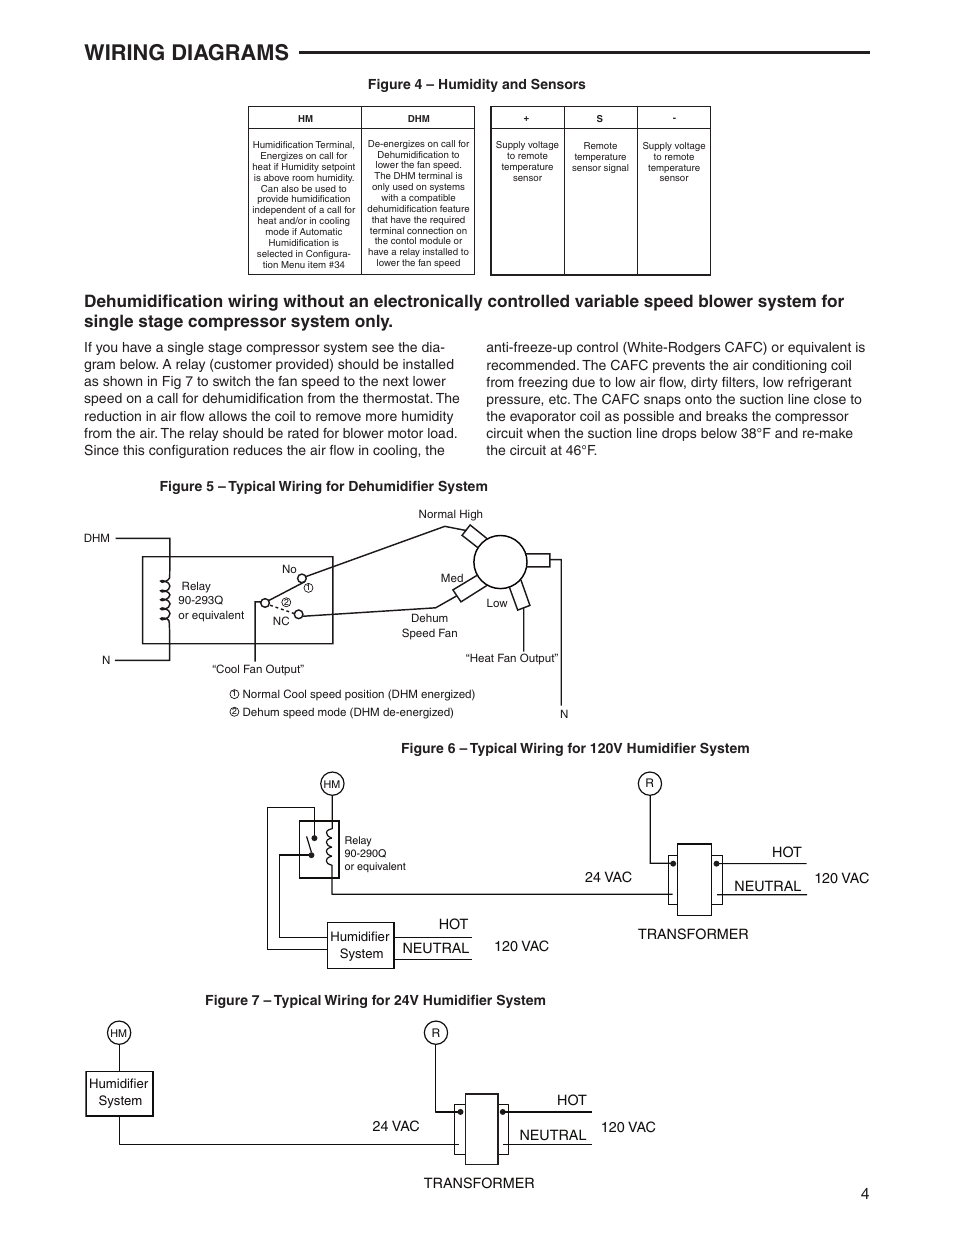 medium resolution of wiring diagrams white rodgers 1f95 1291 user manual page 4 16white rodgers wiring diagram 5